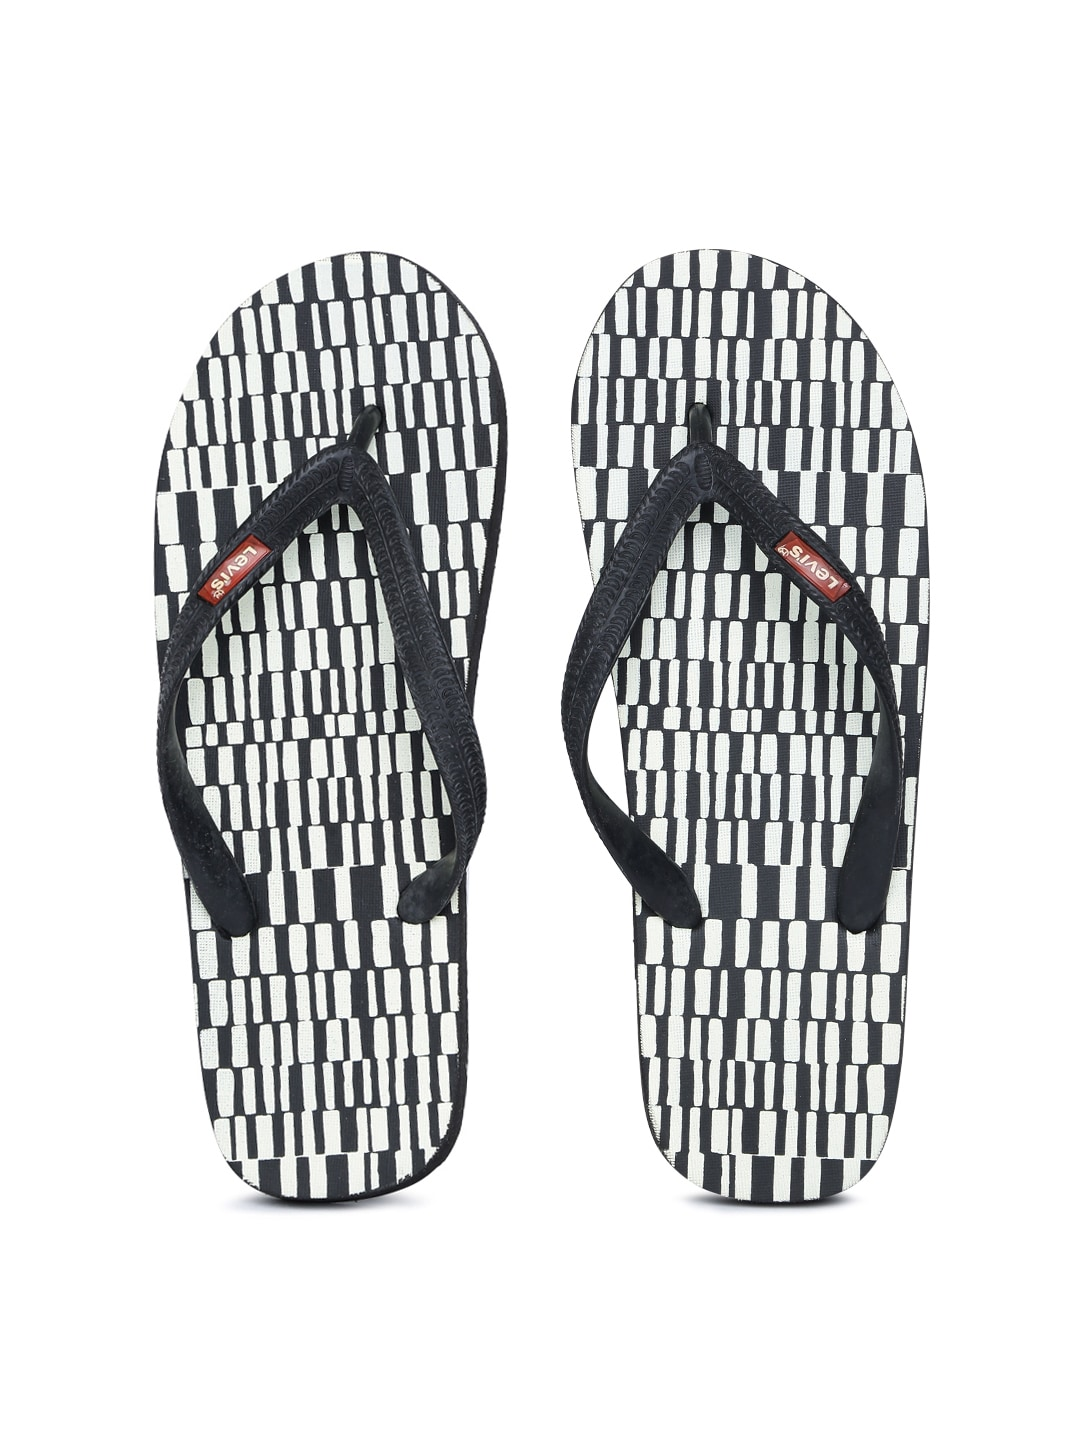 Rubber Flip Flops - Buy Rubber Flip Flops Online in India b531e44d5